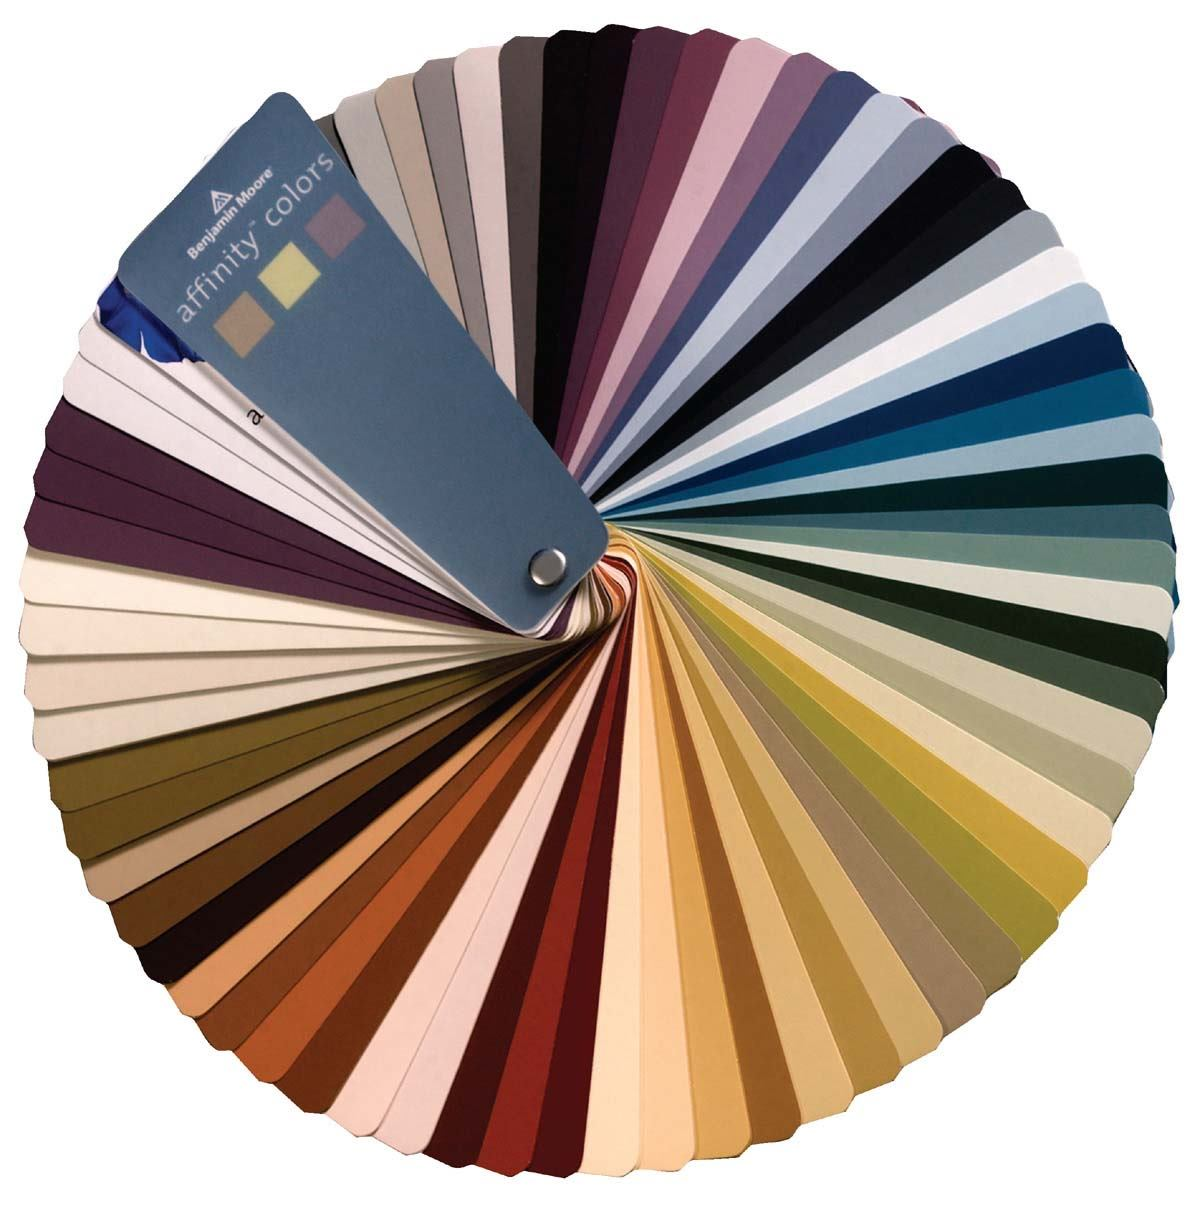 Low Voc Interior Paint